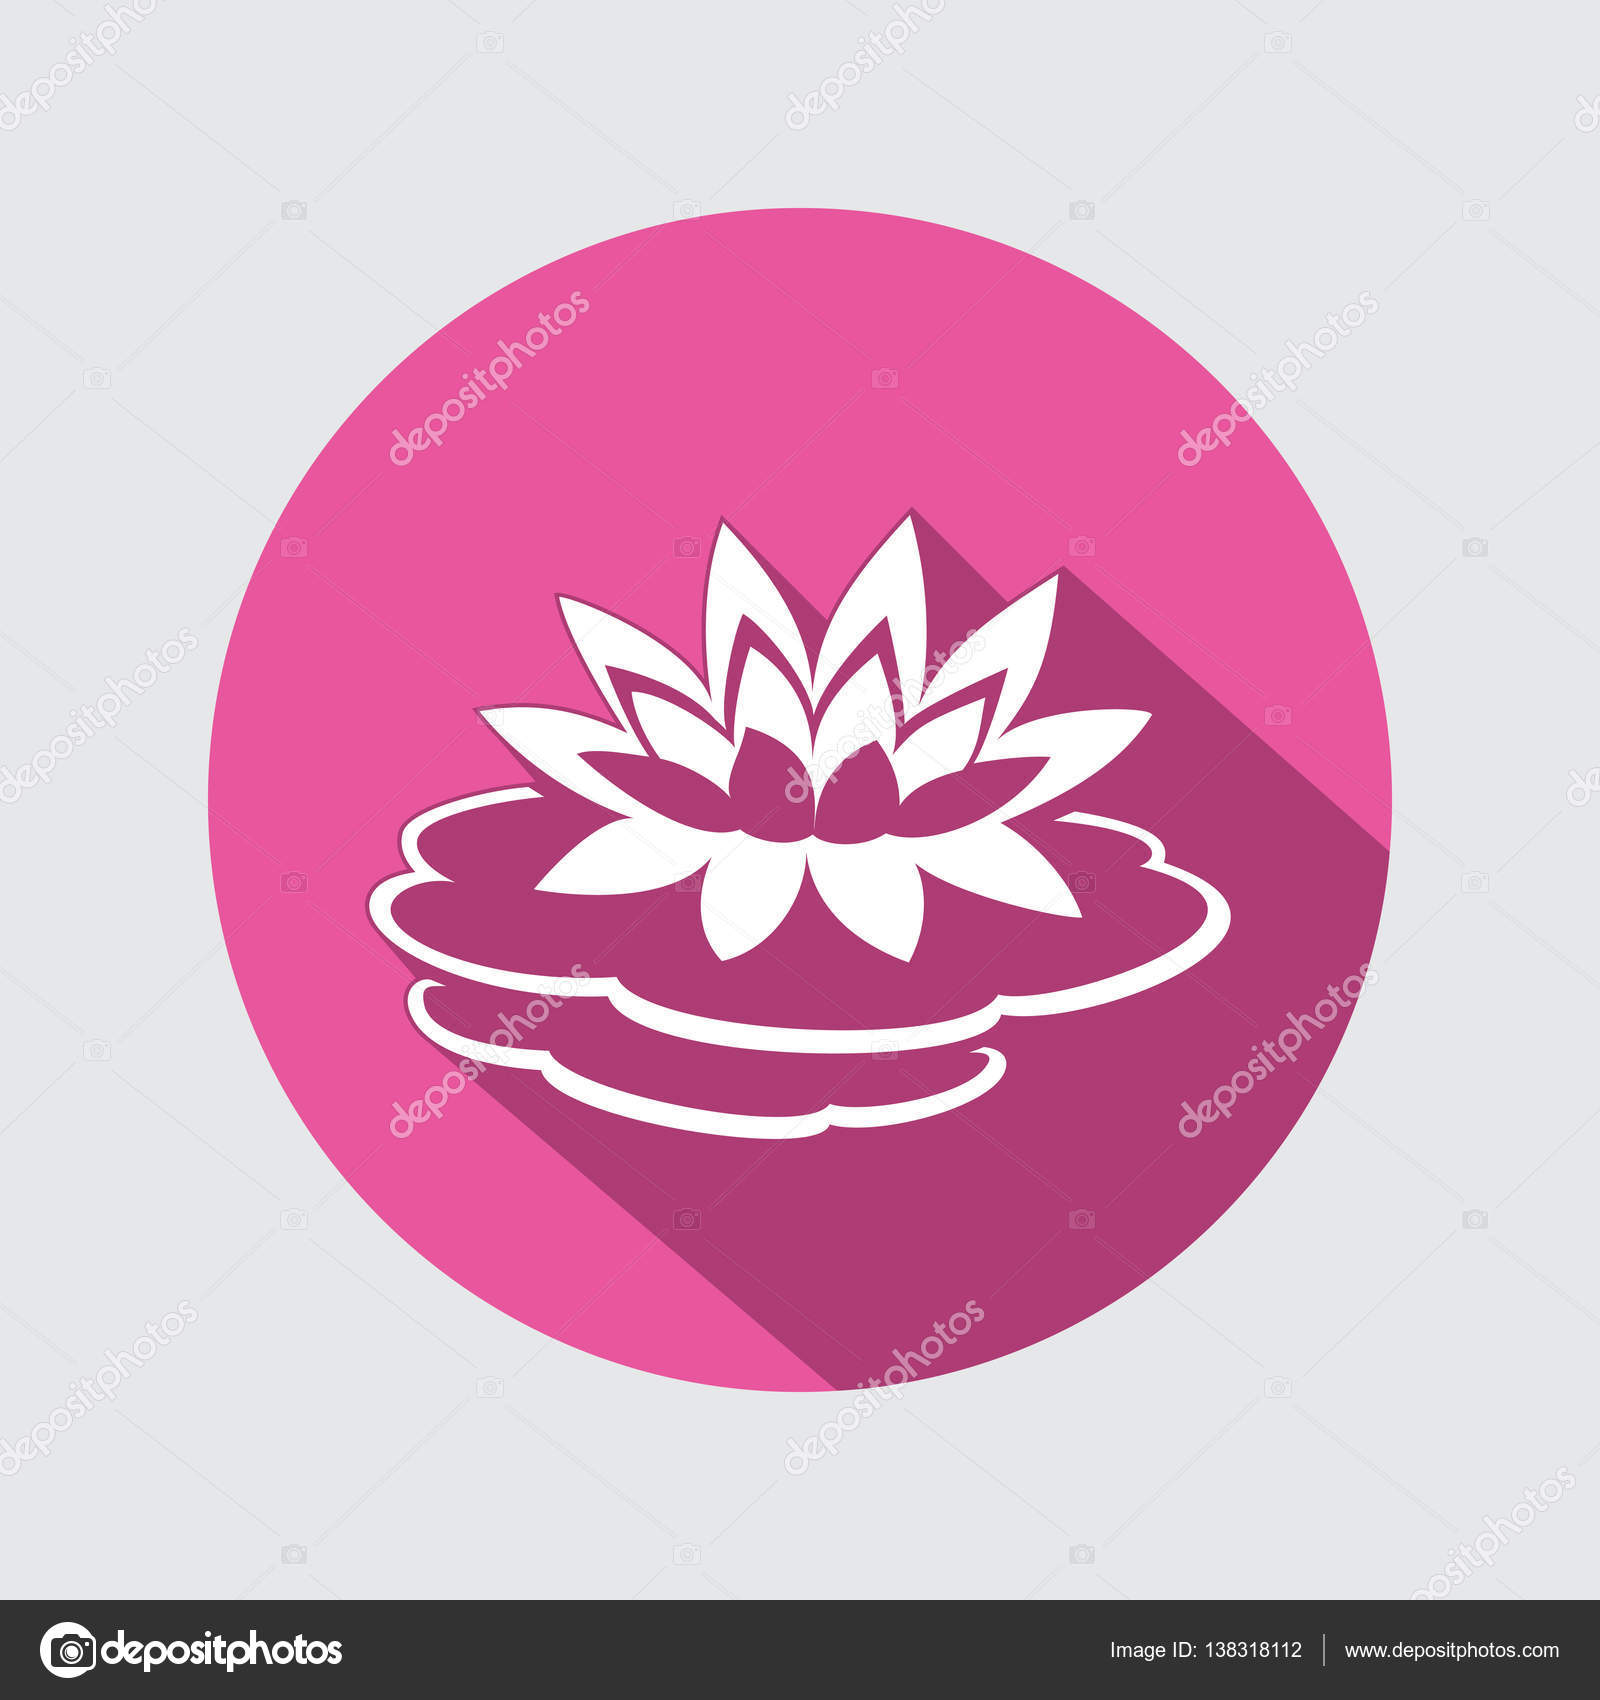 Lily flower icon water lilies waterlily floral symbol round lily flower icon water lilies waterlily floral symbol round circle flat sign izmirmasajfo